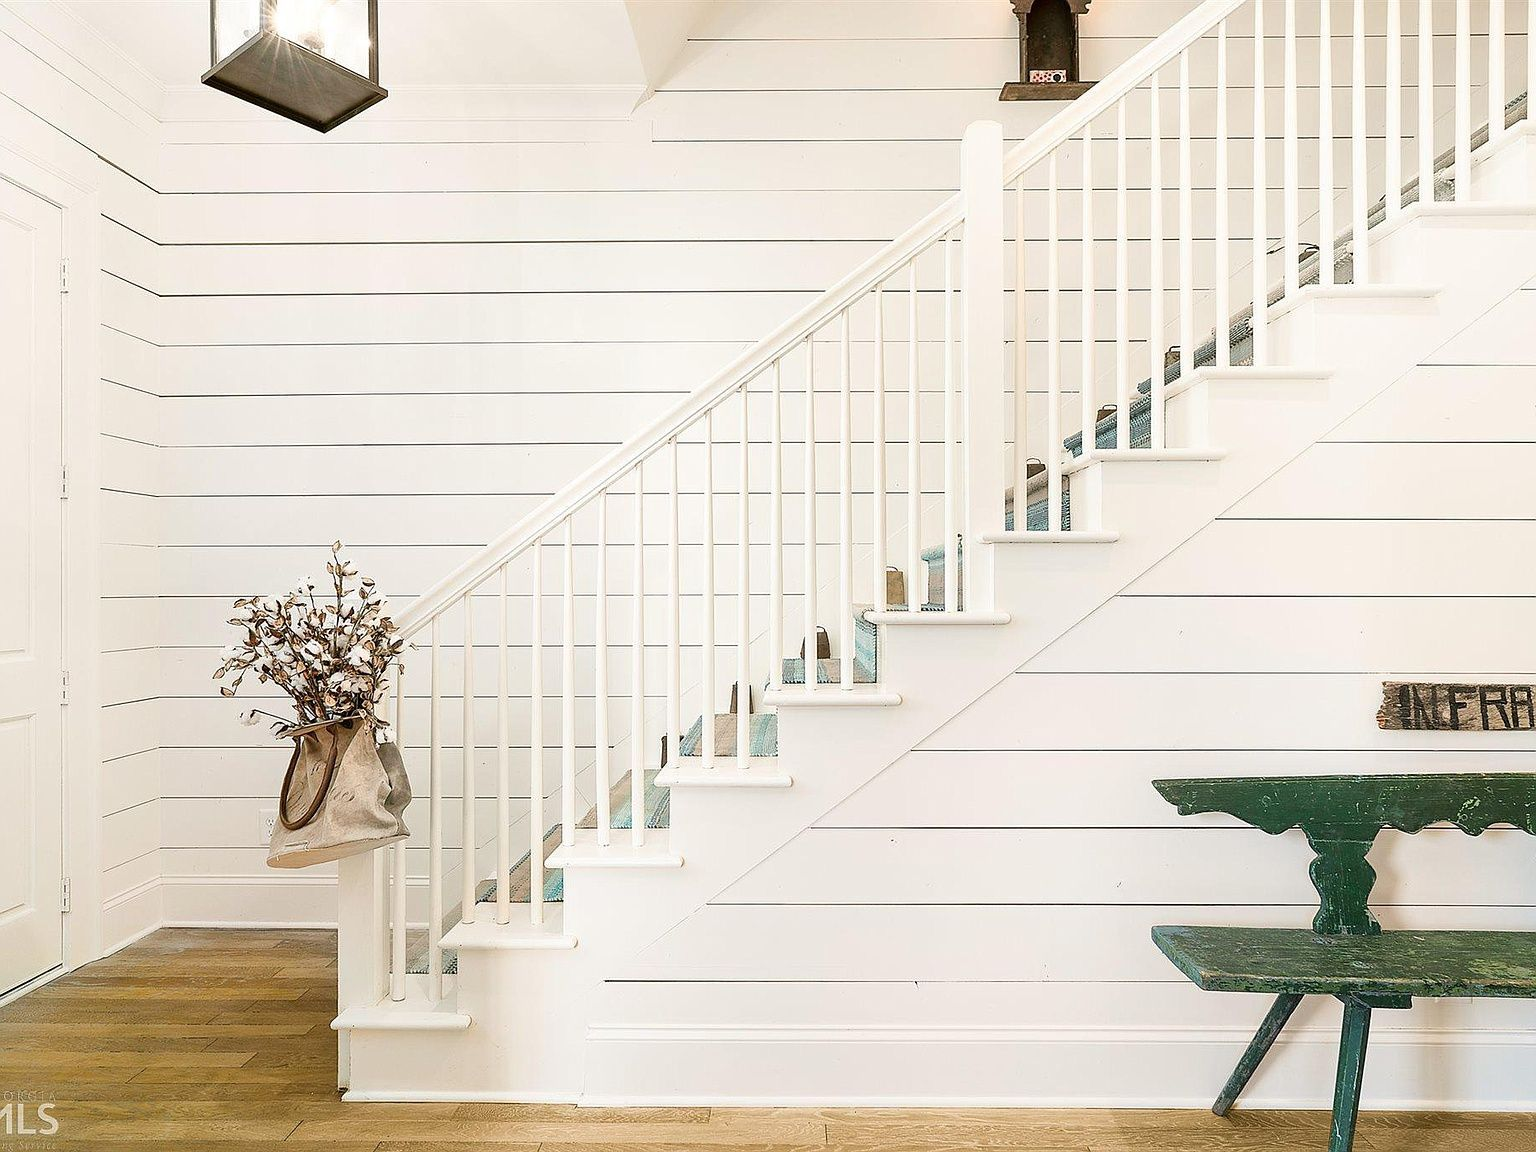 Entryway Ideas And Decor Simple Farmhouse Decor White Painted Entry Shiplap Wall Batten Board White Painted Stairs Stairs Painted White Farmhouse Stairs